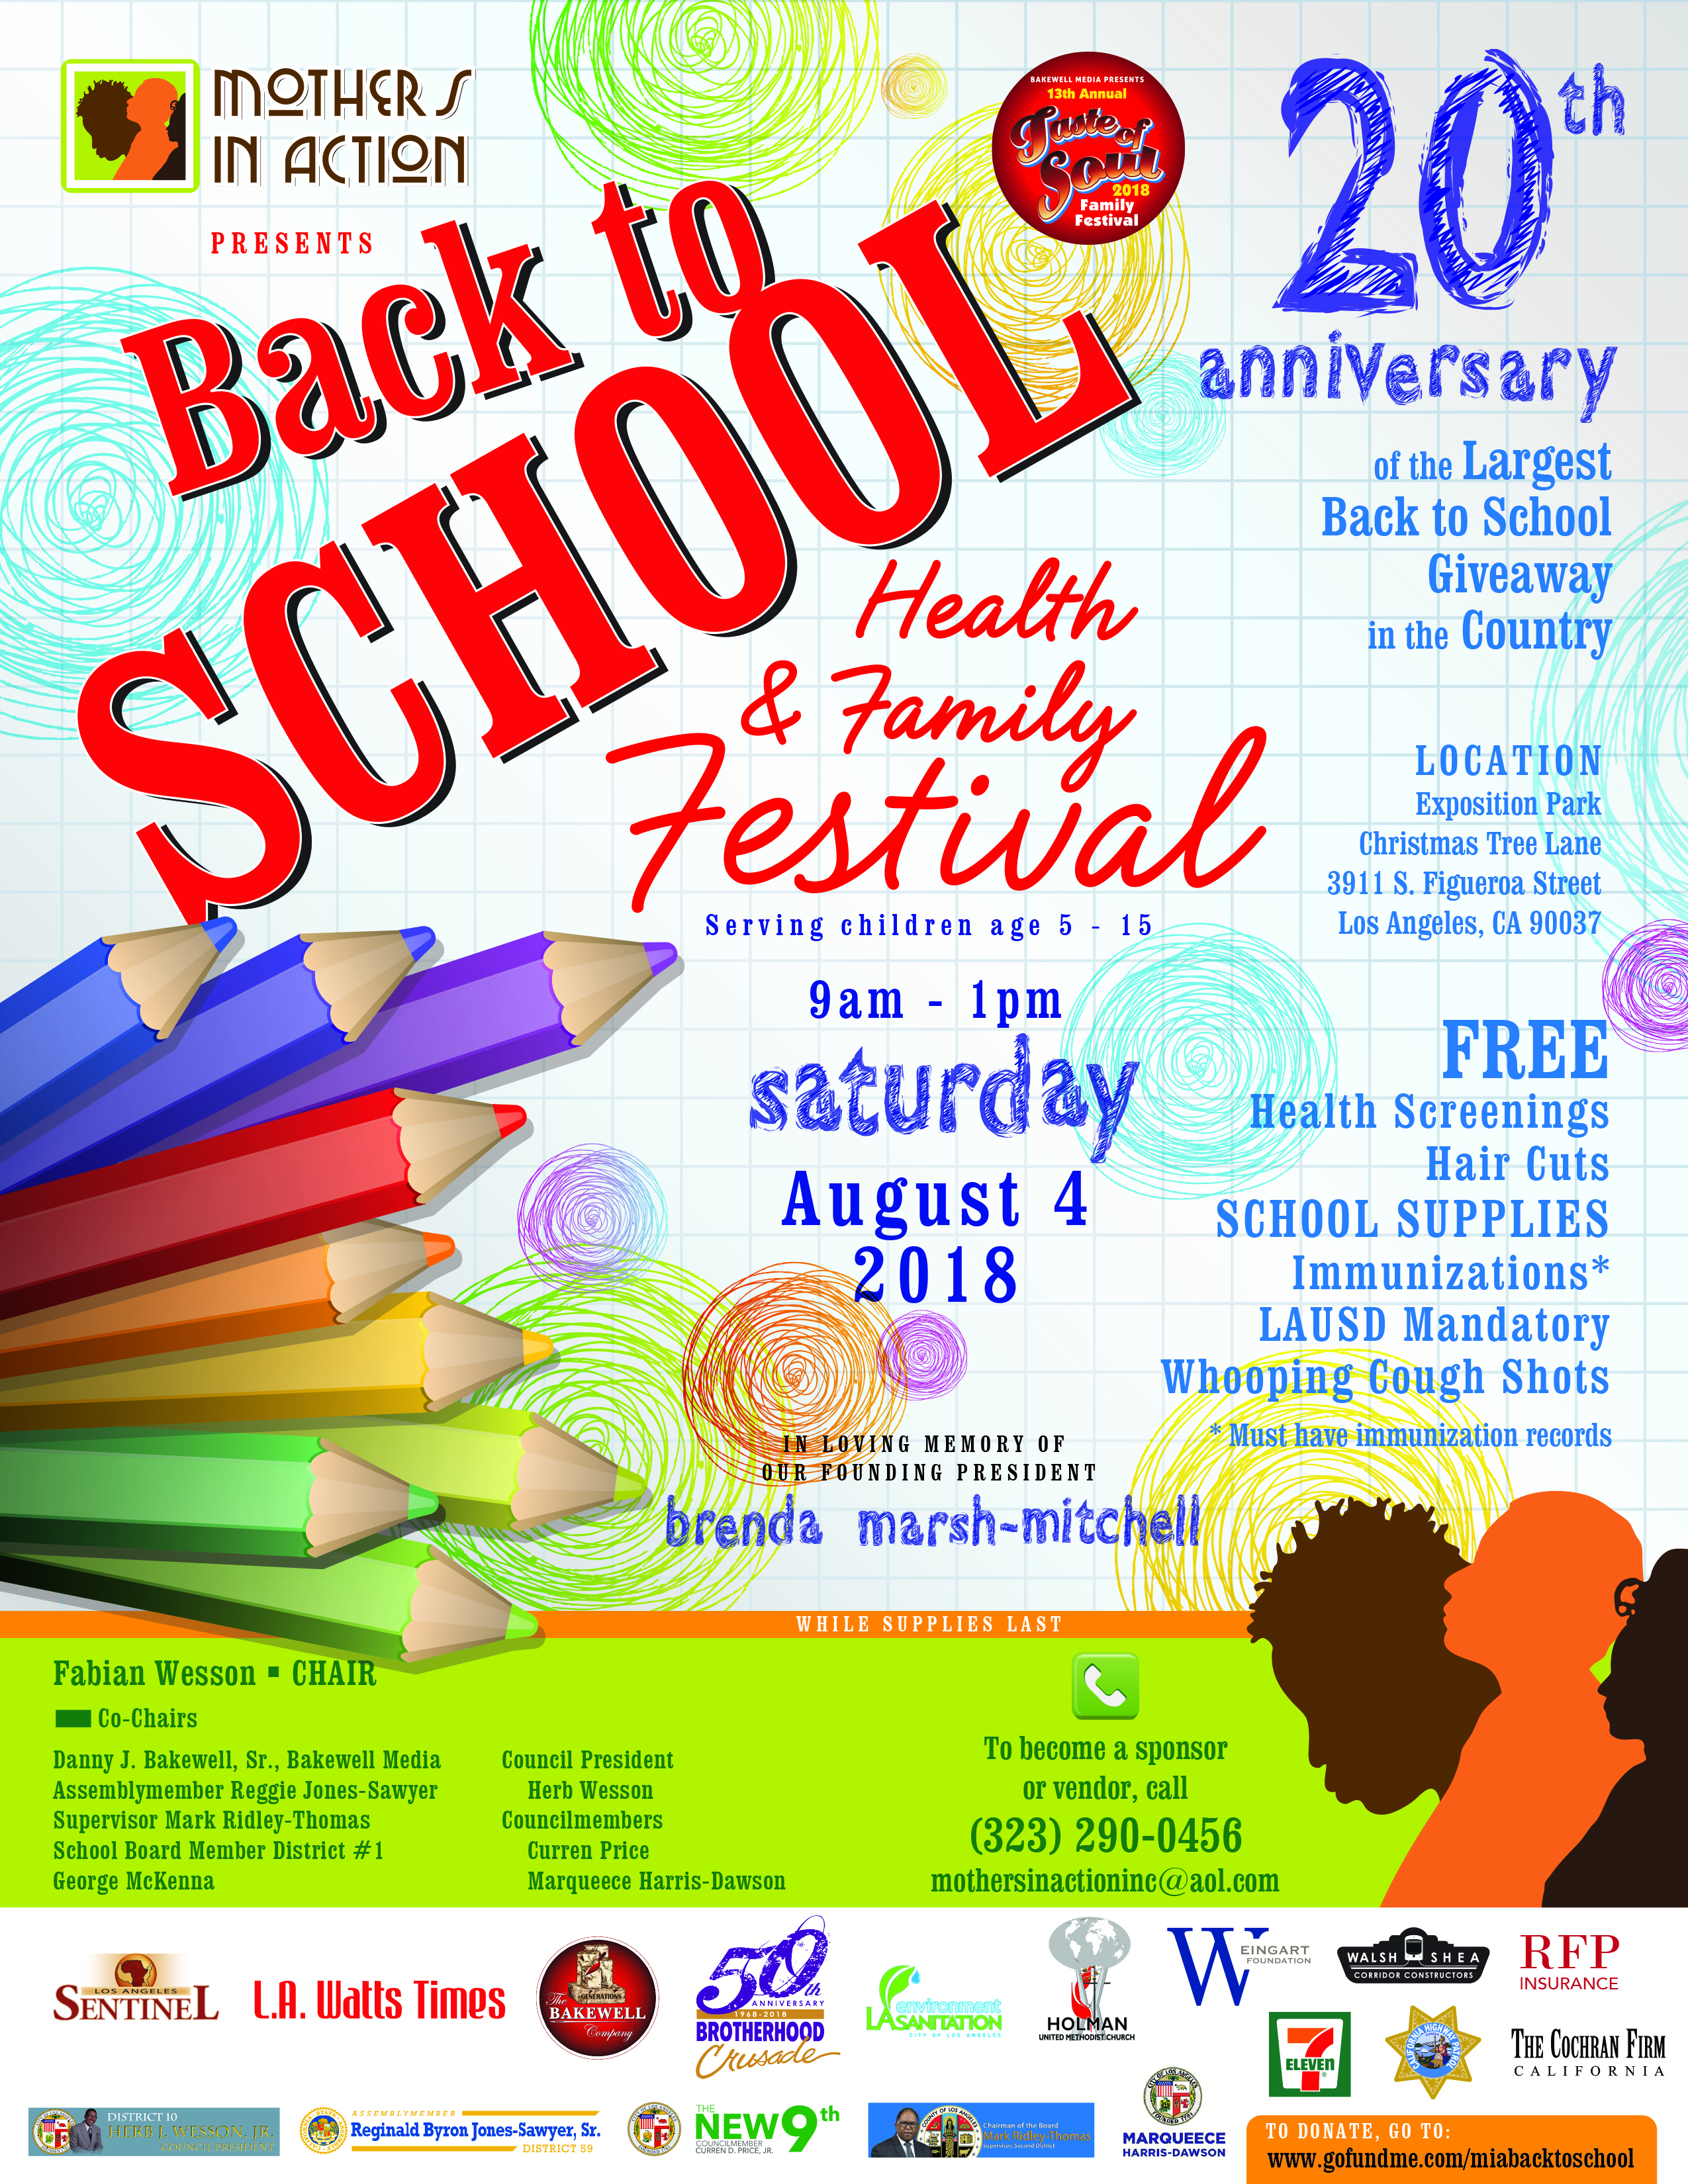 Mothers In Action Back to School Health & Family Festival